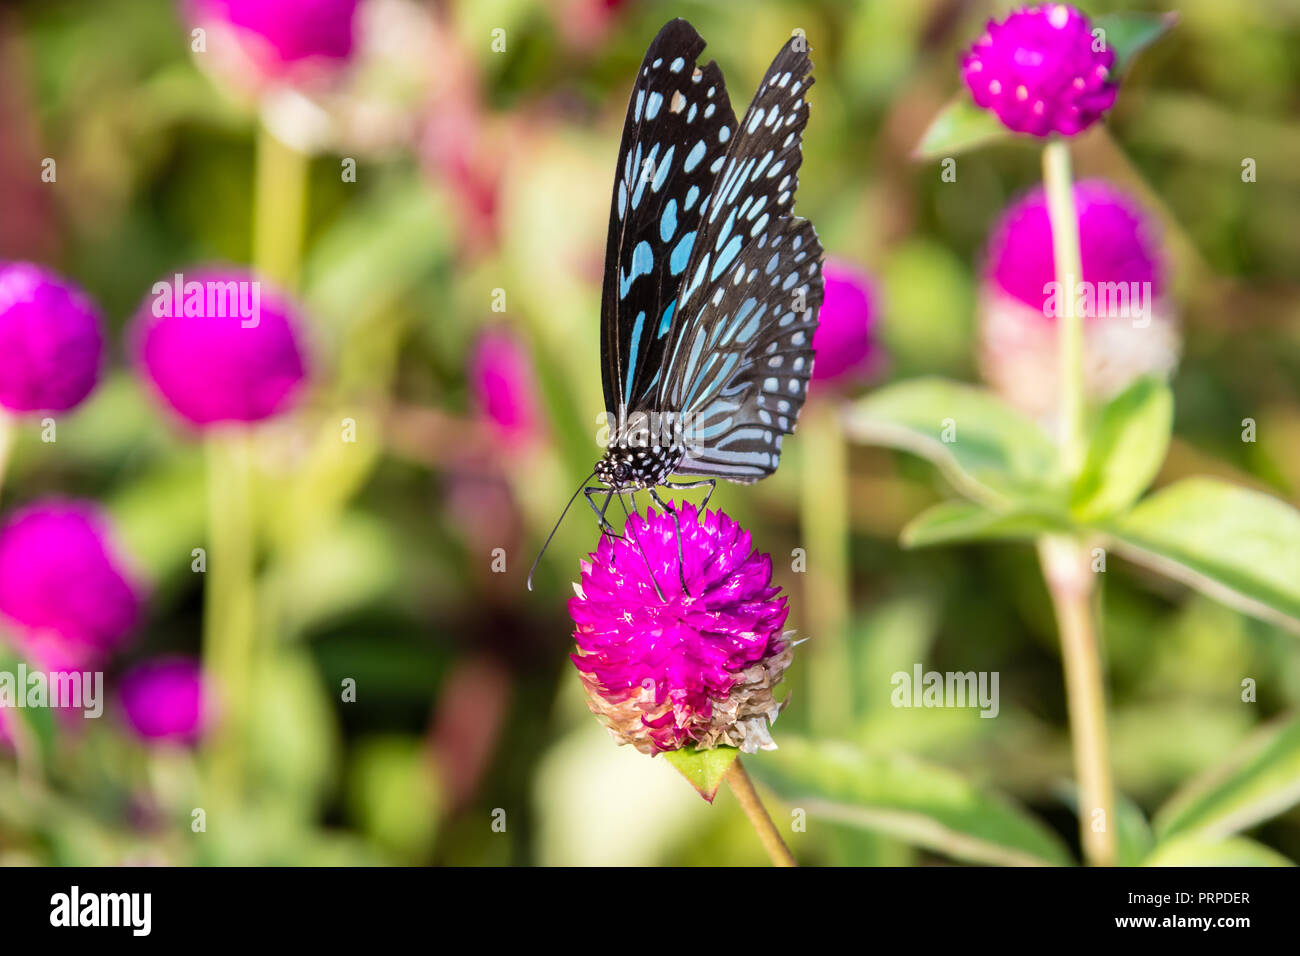 Butterfly Flowers Kerala High Resolution Stock Photography And Images Alamy